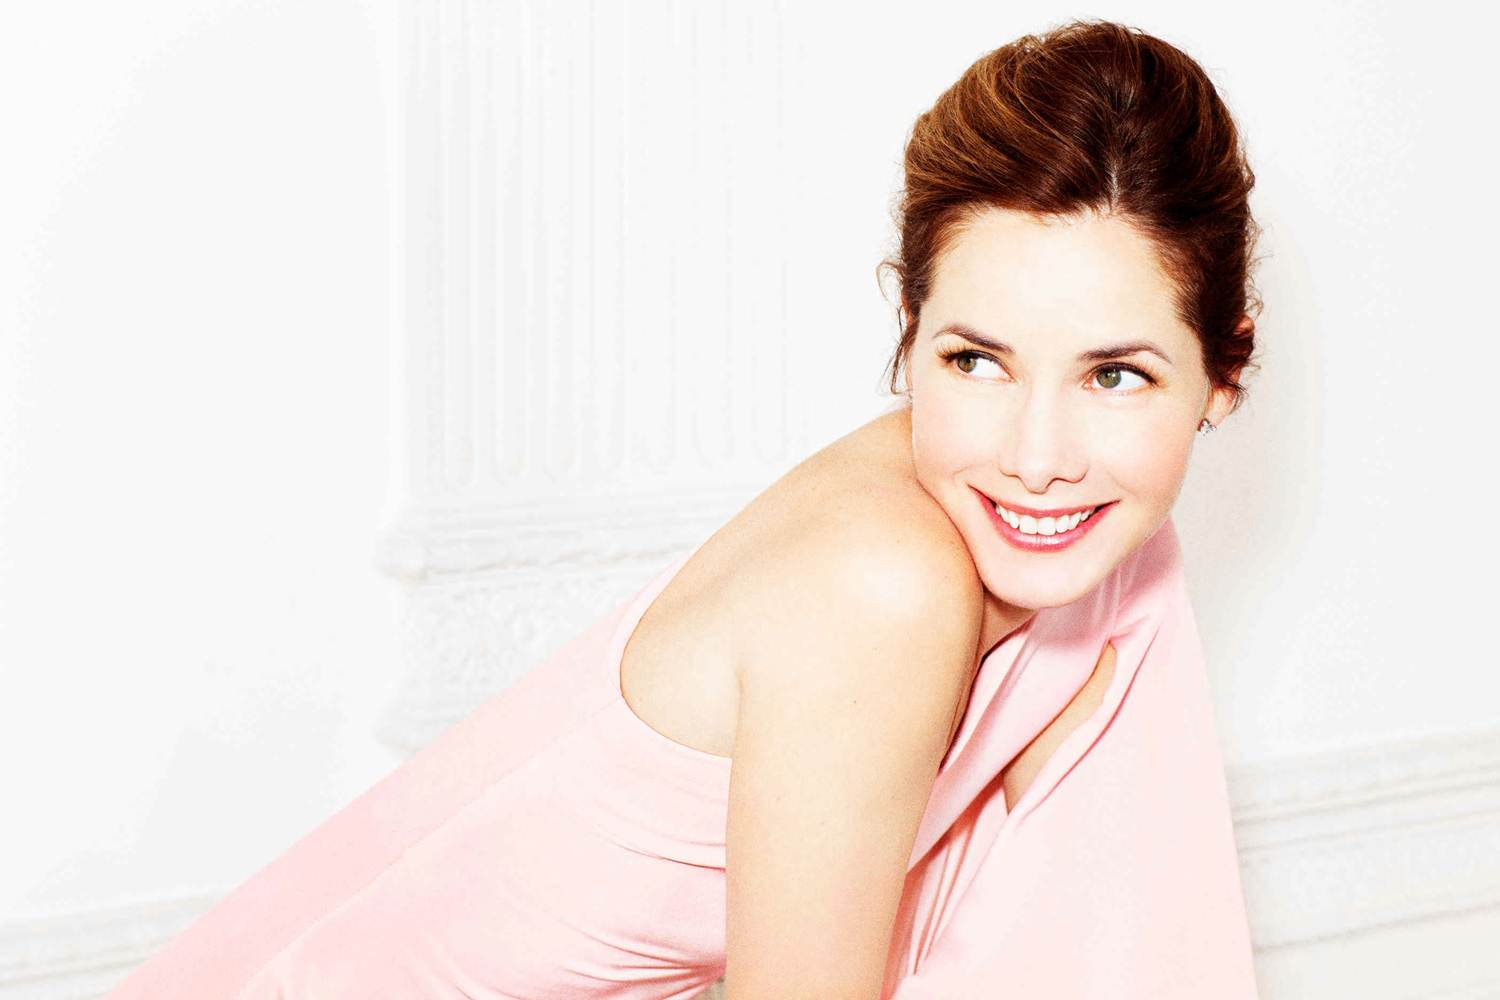 Darcey Bussell smiles to the camera